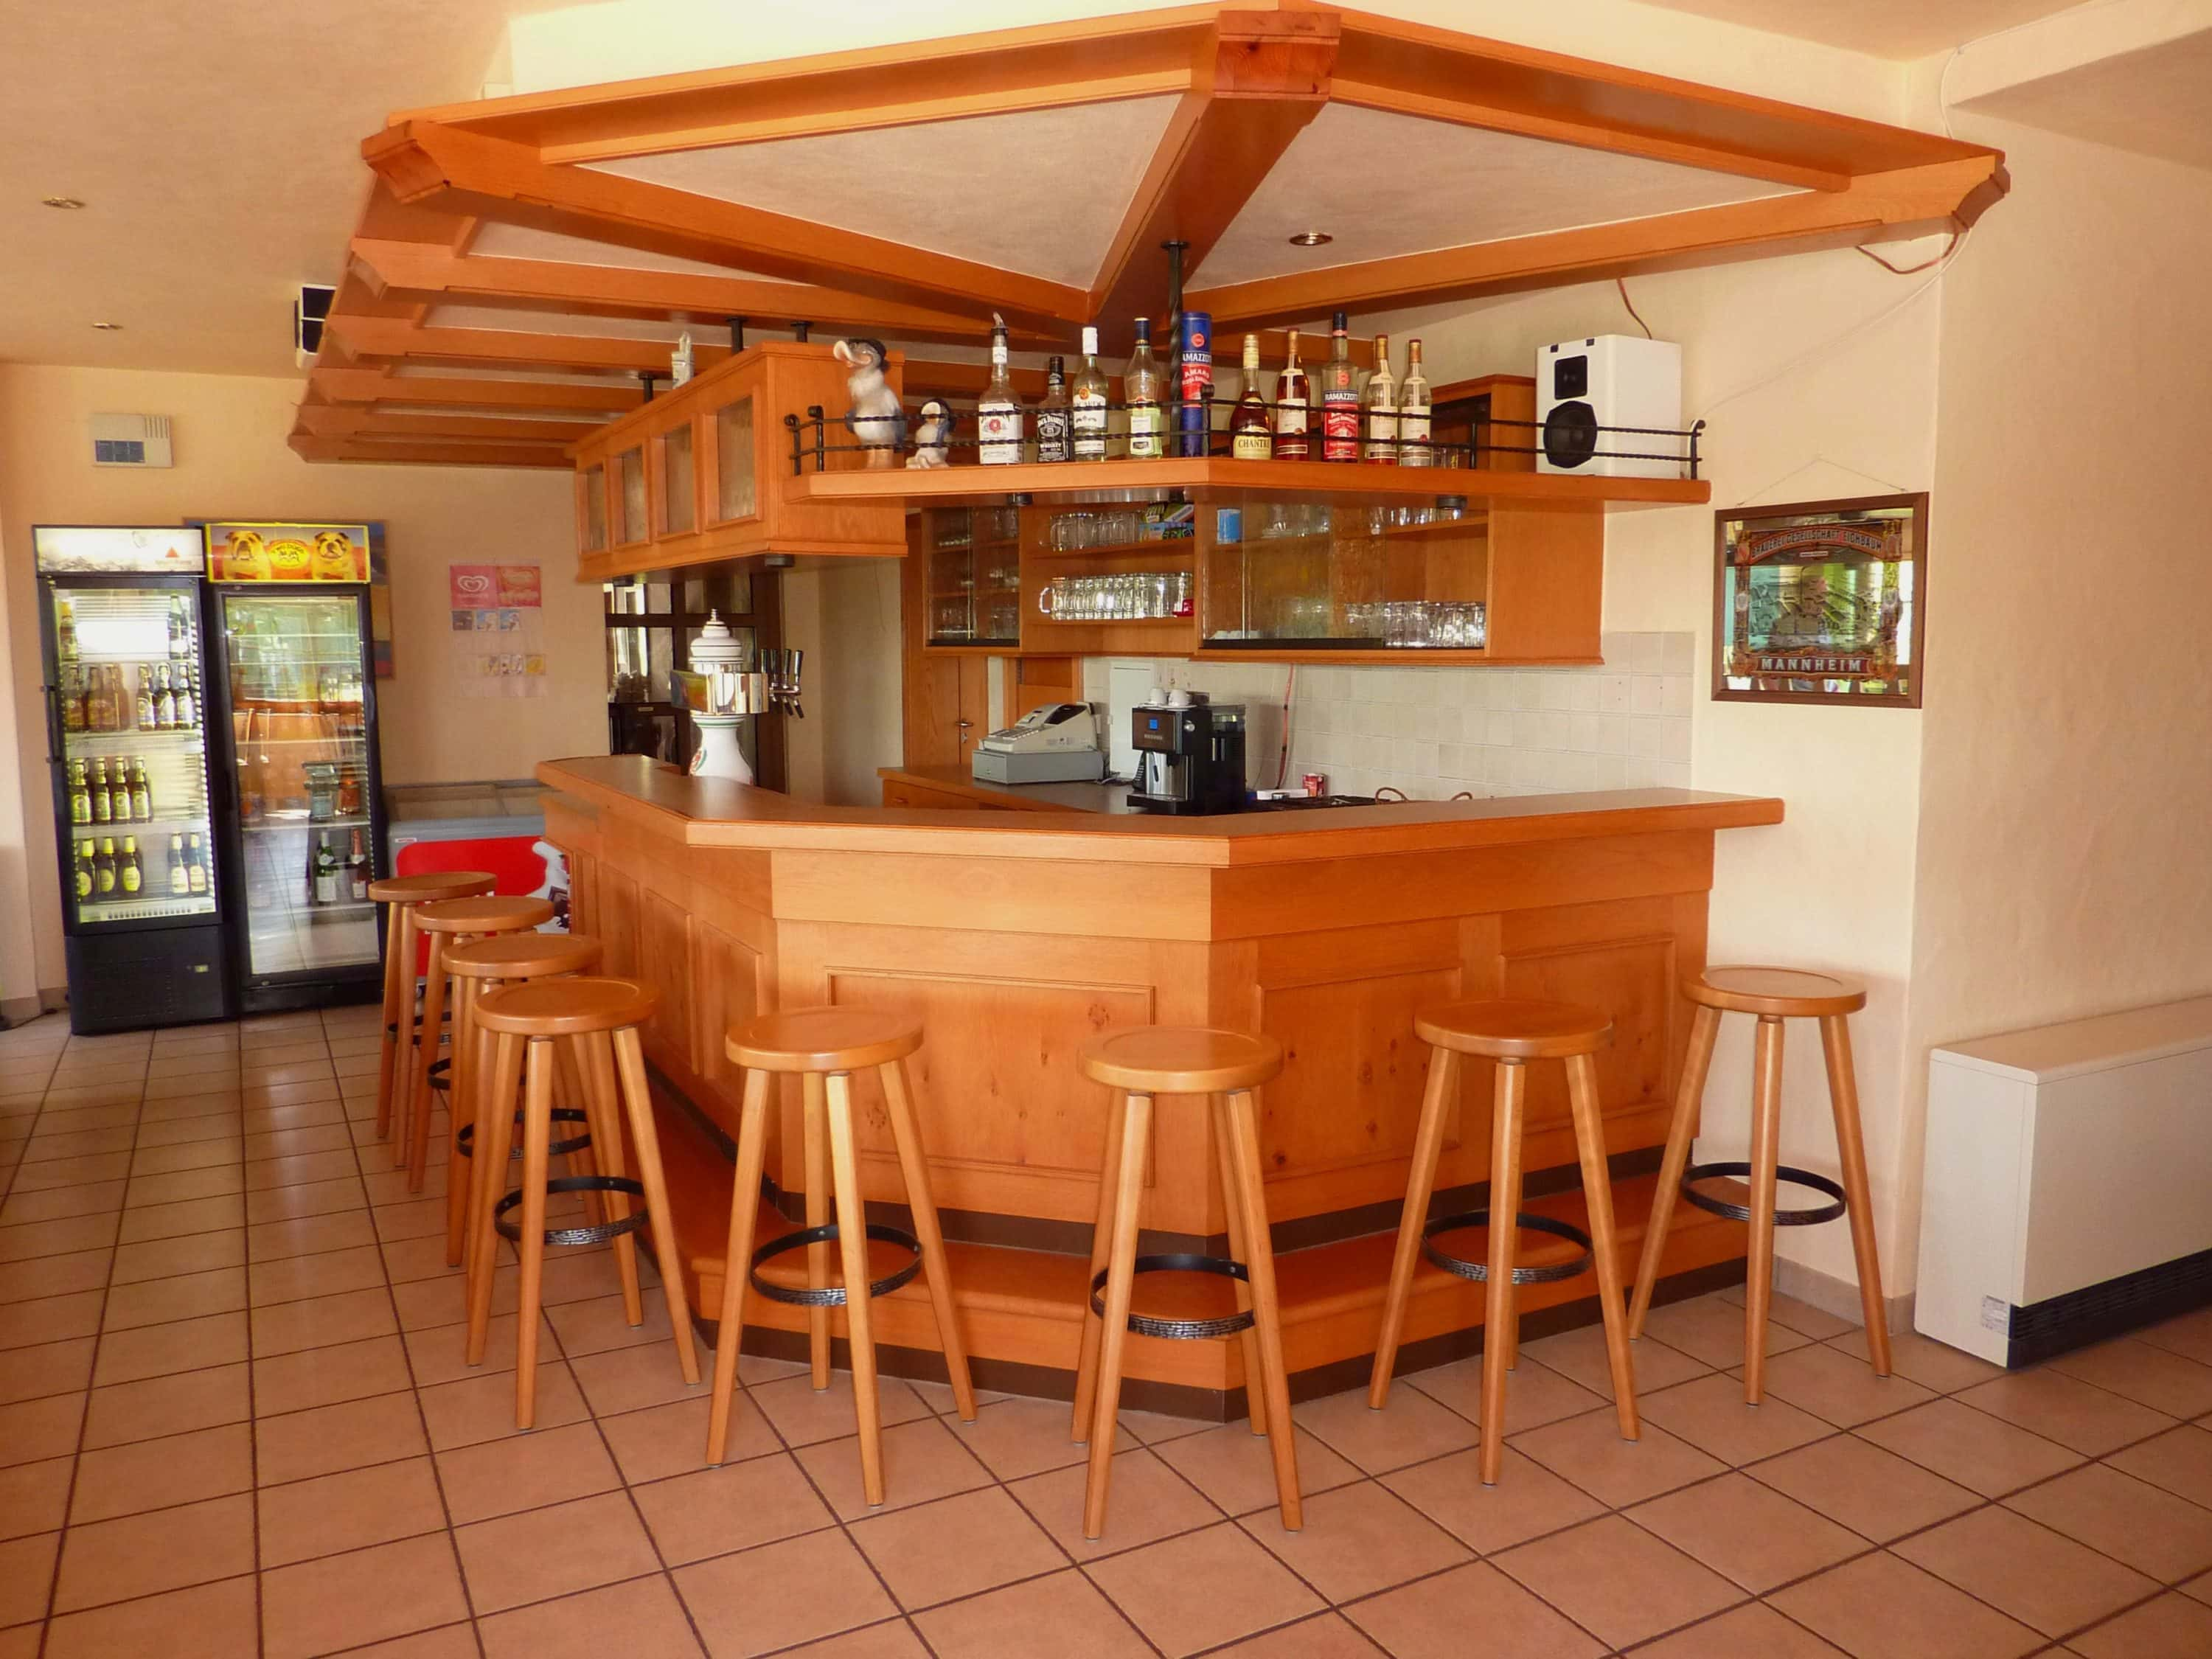 Bar im Restaurant